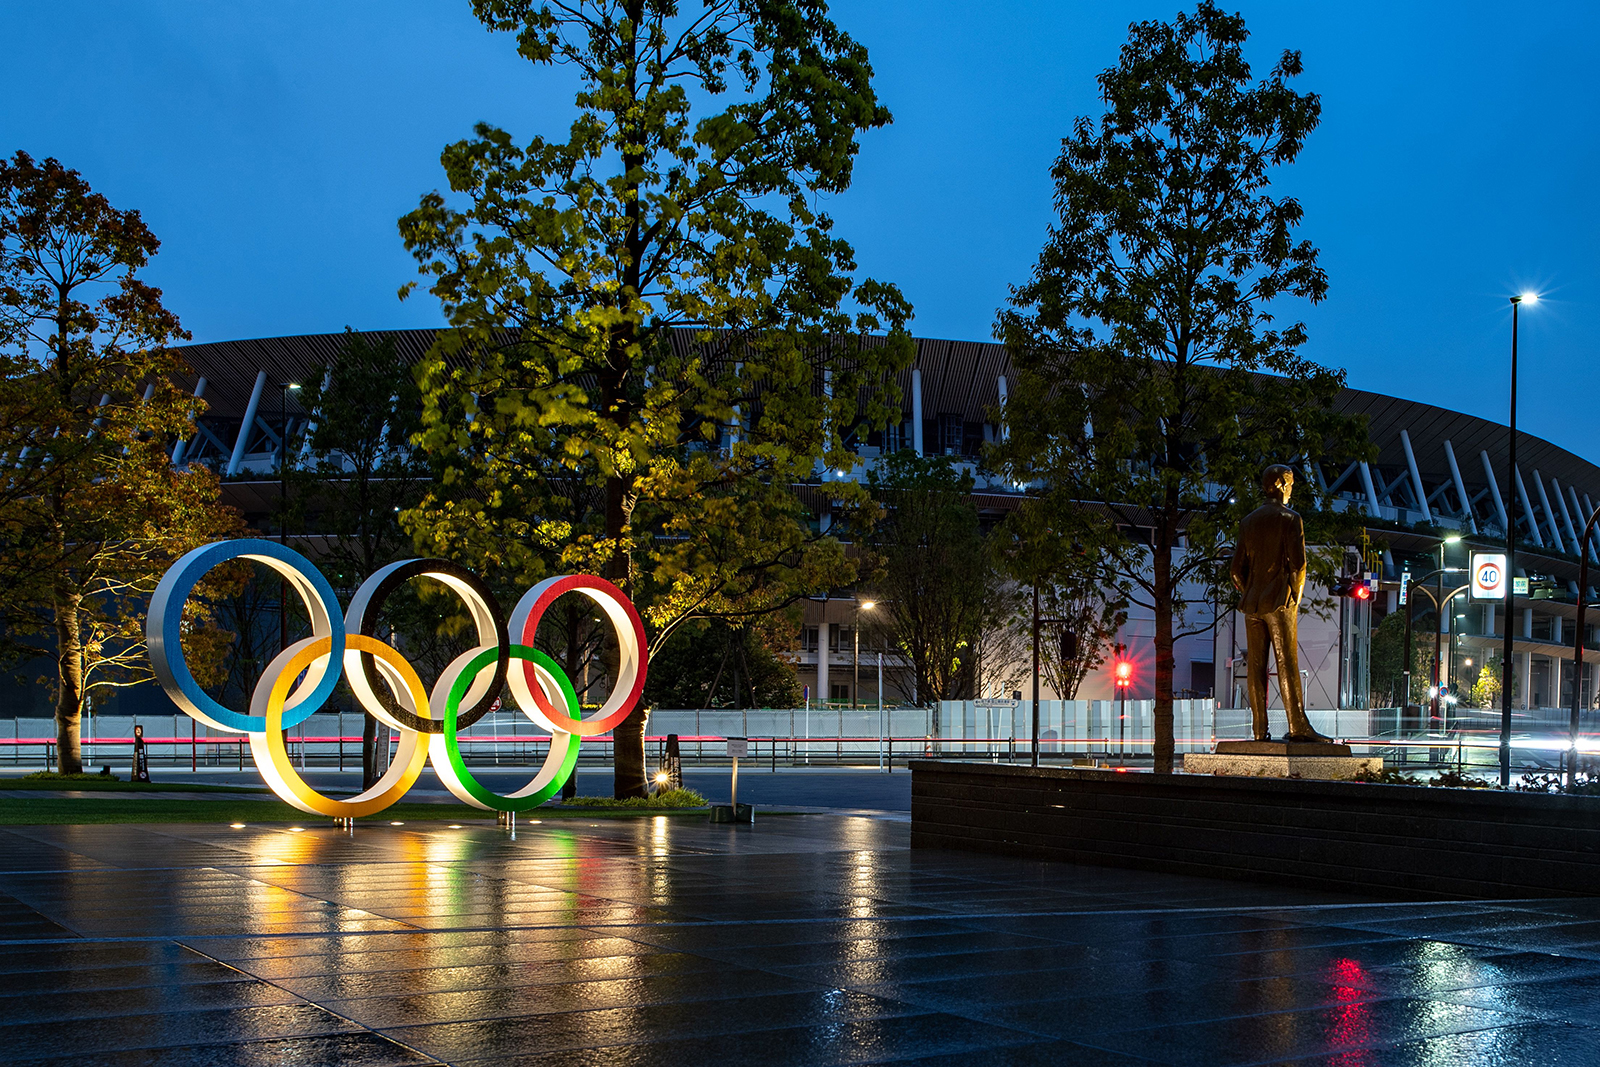 The Olympic Rings are displayed before the National Stadium in Tokyo on April 20.